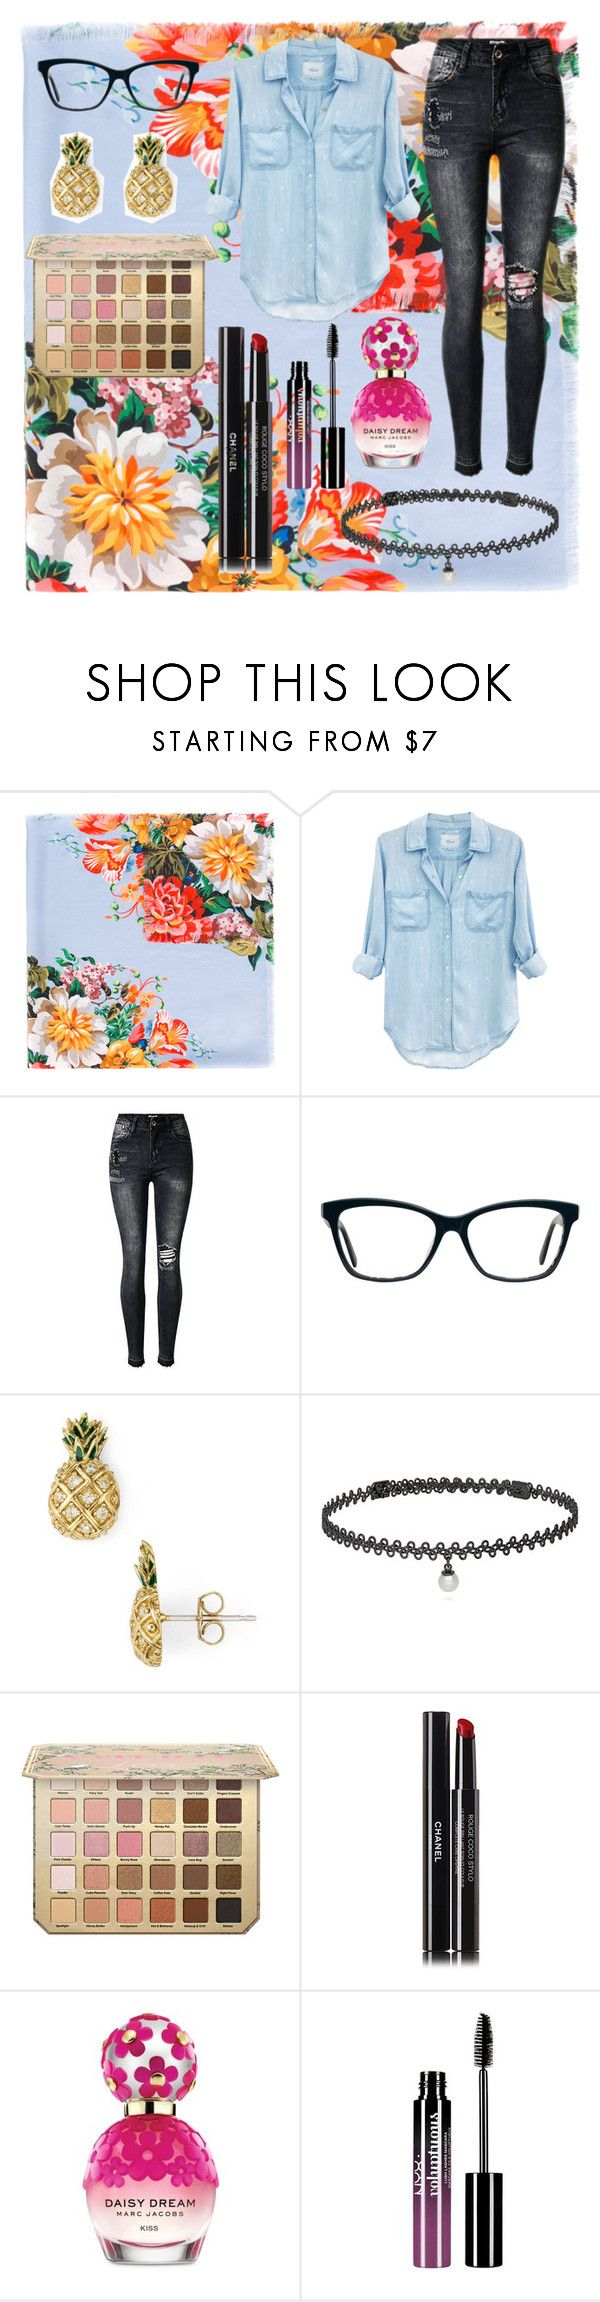 """""""Untitled #48"""" by hayden-the-unicorn ❤ liked on Polyvore featuring Gucci, Rails, Marc Jacobs, BERRICLE, Chanel and Charlotte Russe"""